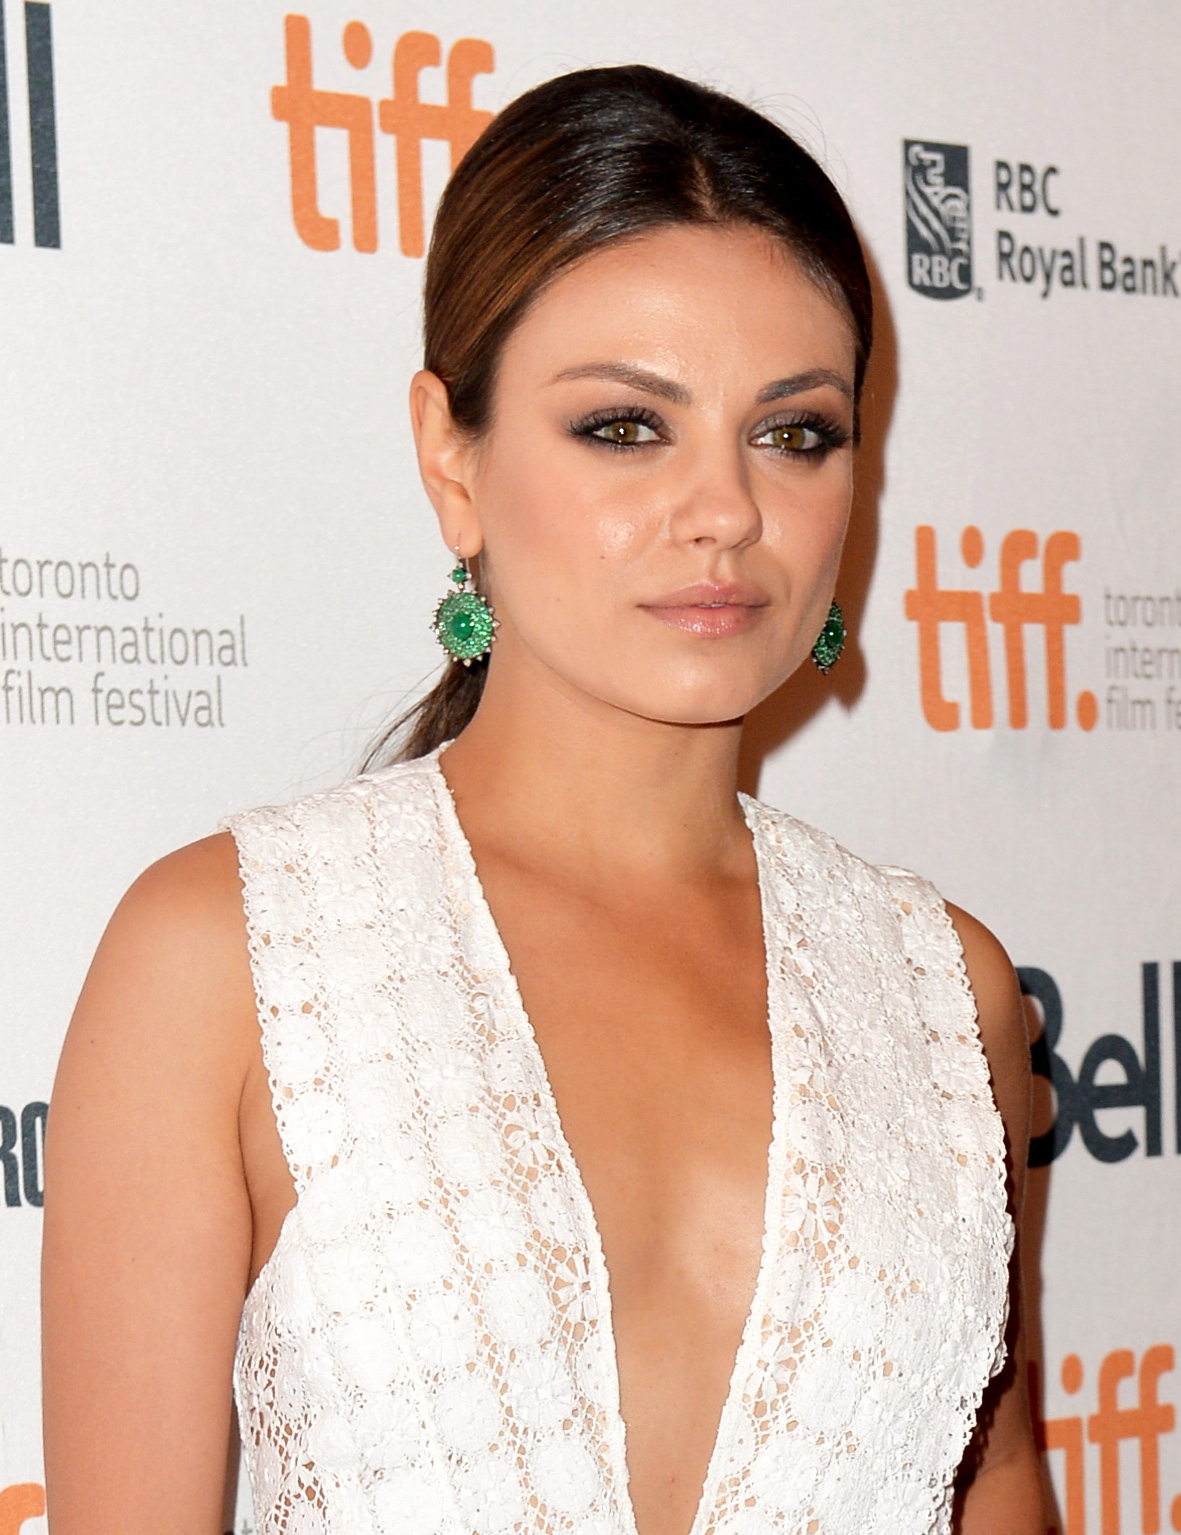 Mila Kunis wore her hair slicked back in a low ponytail at the Third Person premiere. She completed the look with smoky eyes and bold brows.